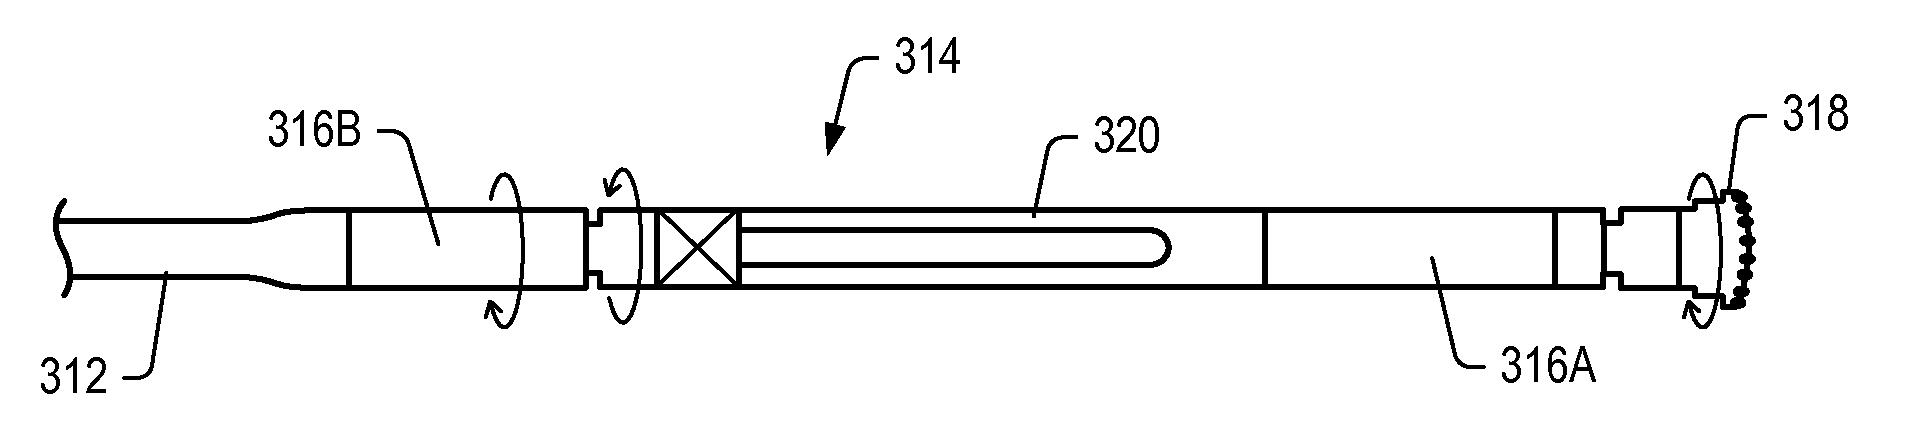 Patent Us 9528322 B2 Dske32c 287 8 Doublestacked Fullsize Electric Convection Oven First Claim